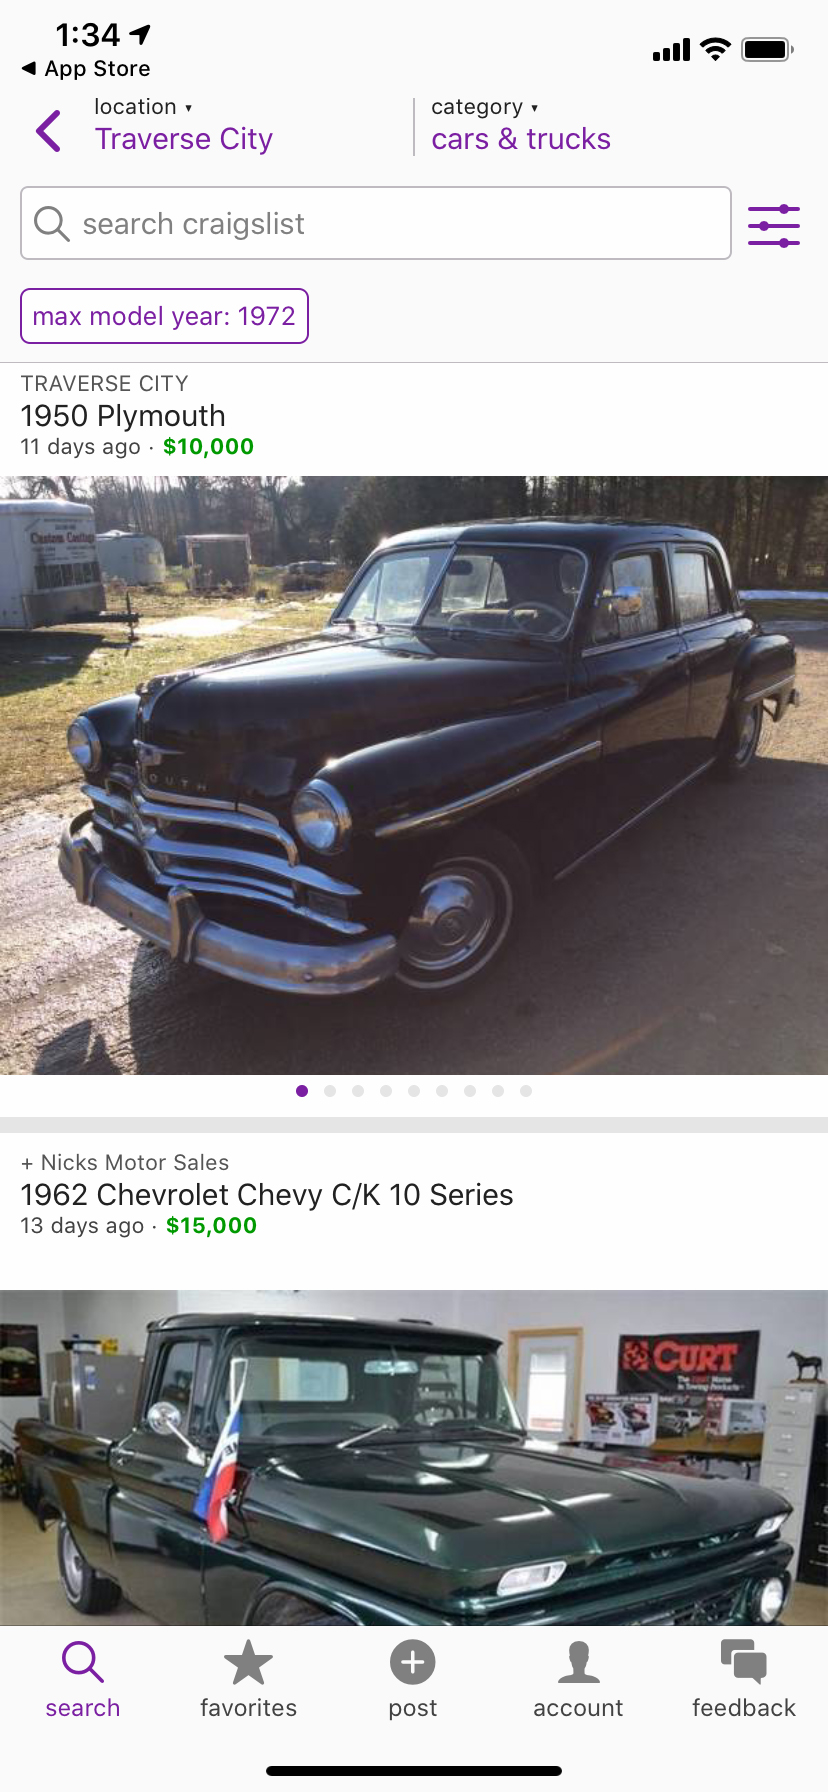 Craigslist cars trucks local listings page